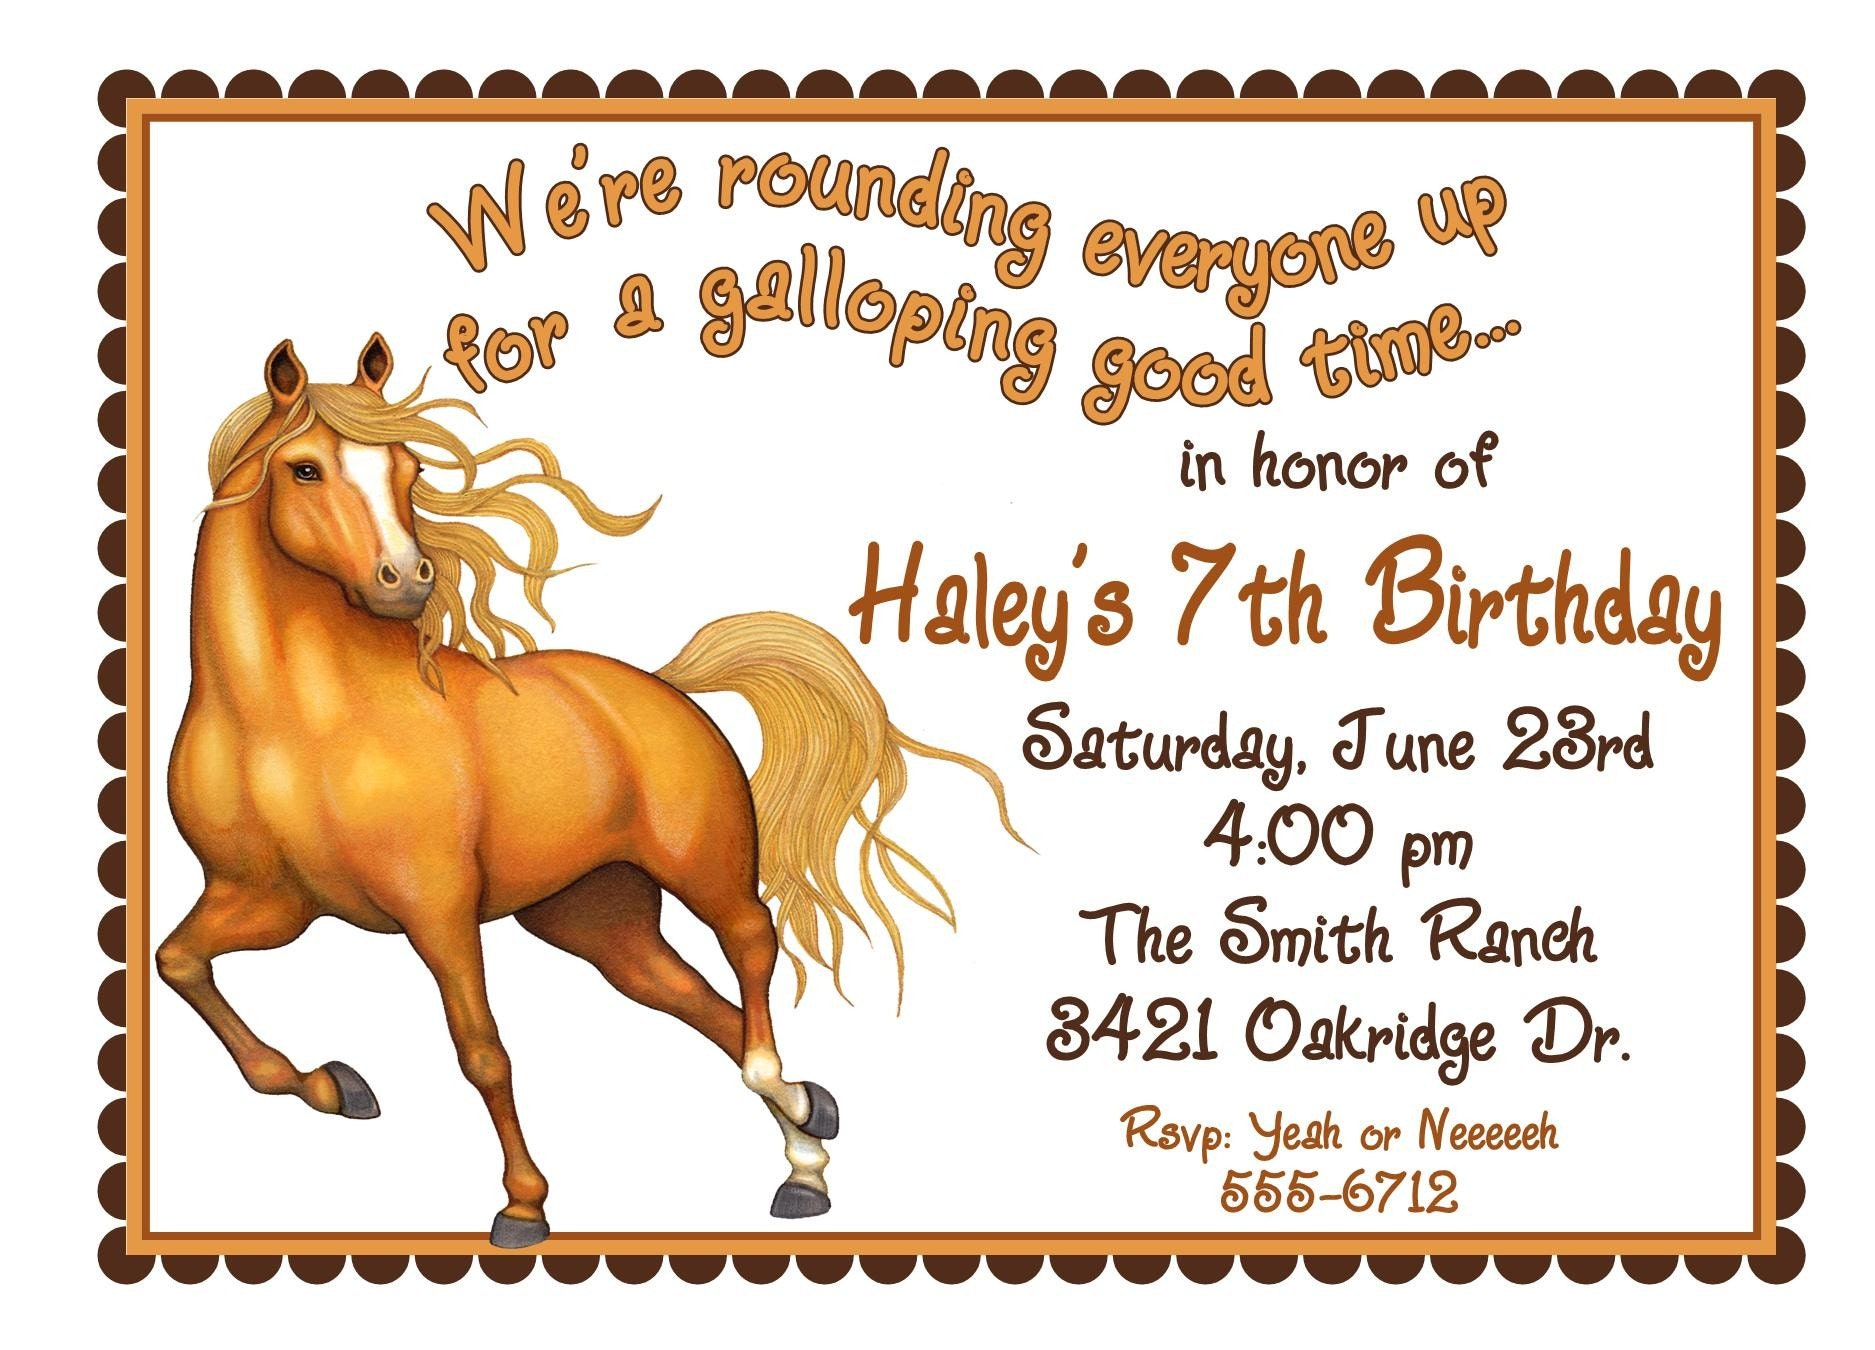 Personalized Birthday Invitations Horse Western Wild West Cowboy